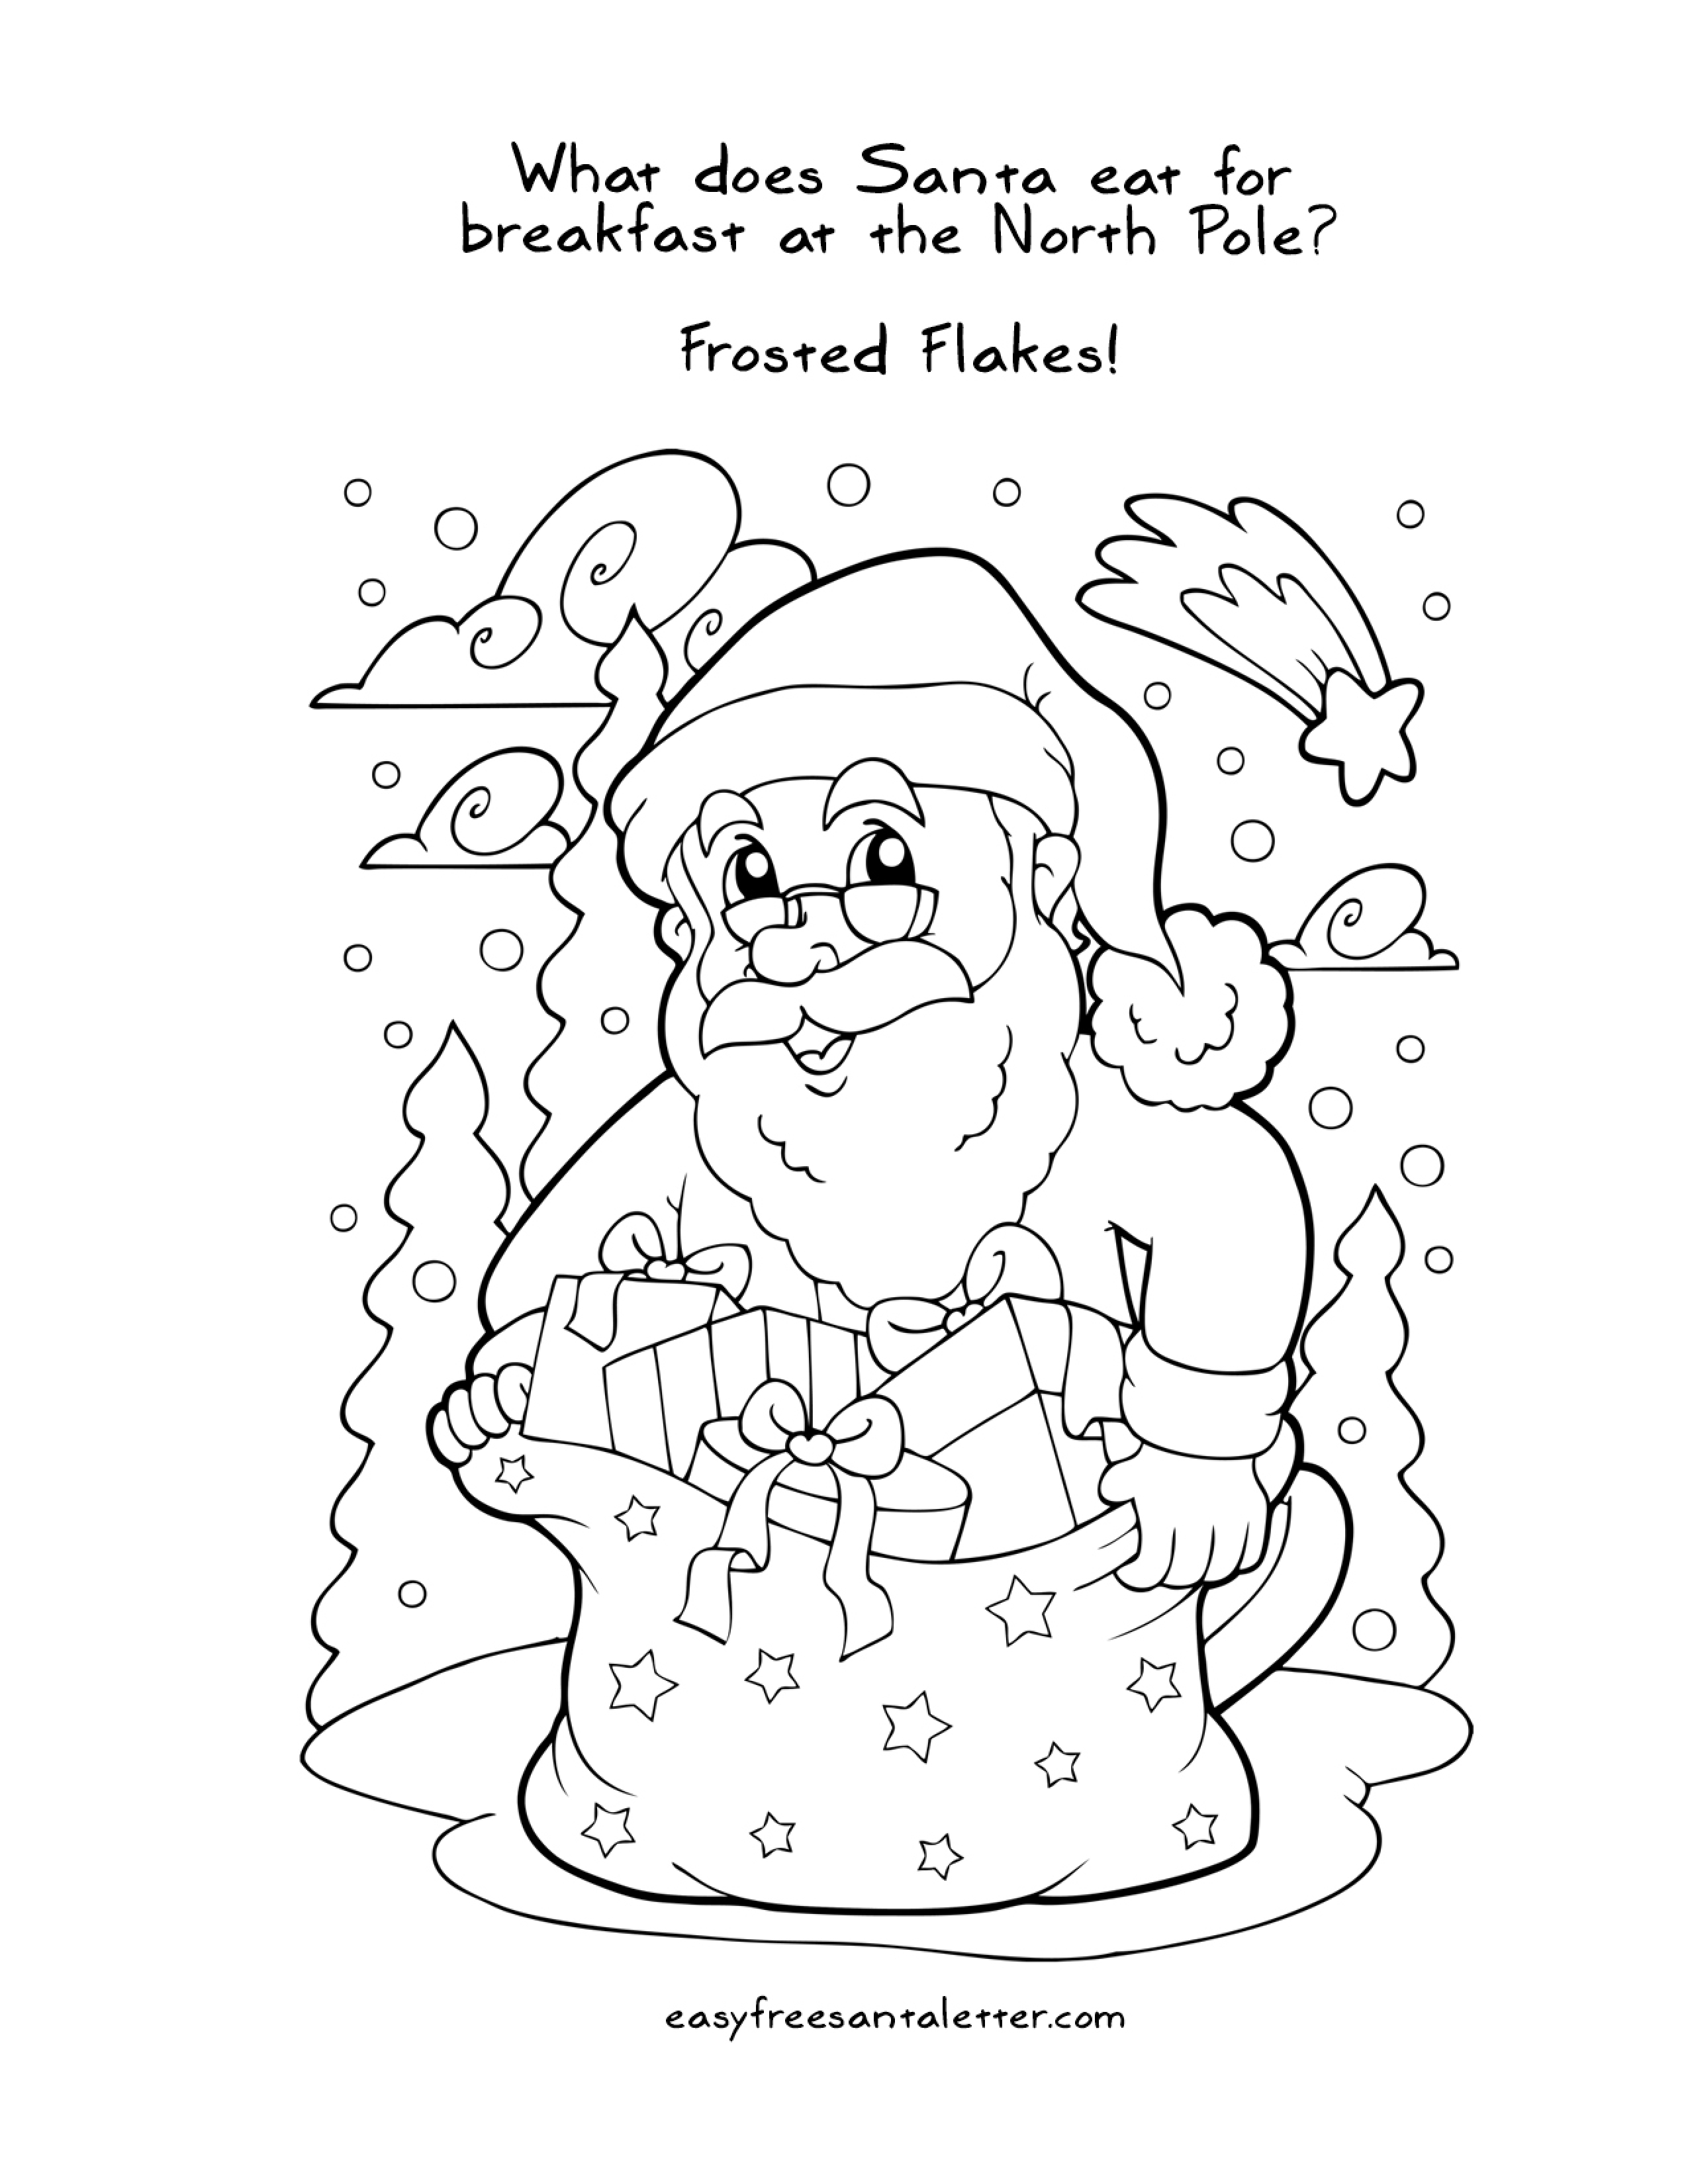 Coloring Christmas List With Free Printable Pages Jokes And